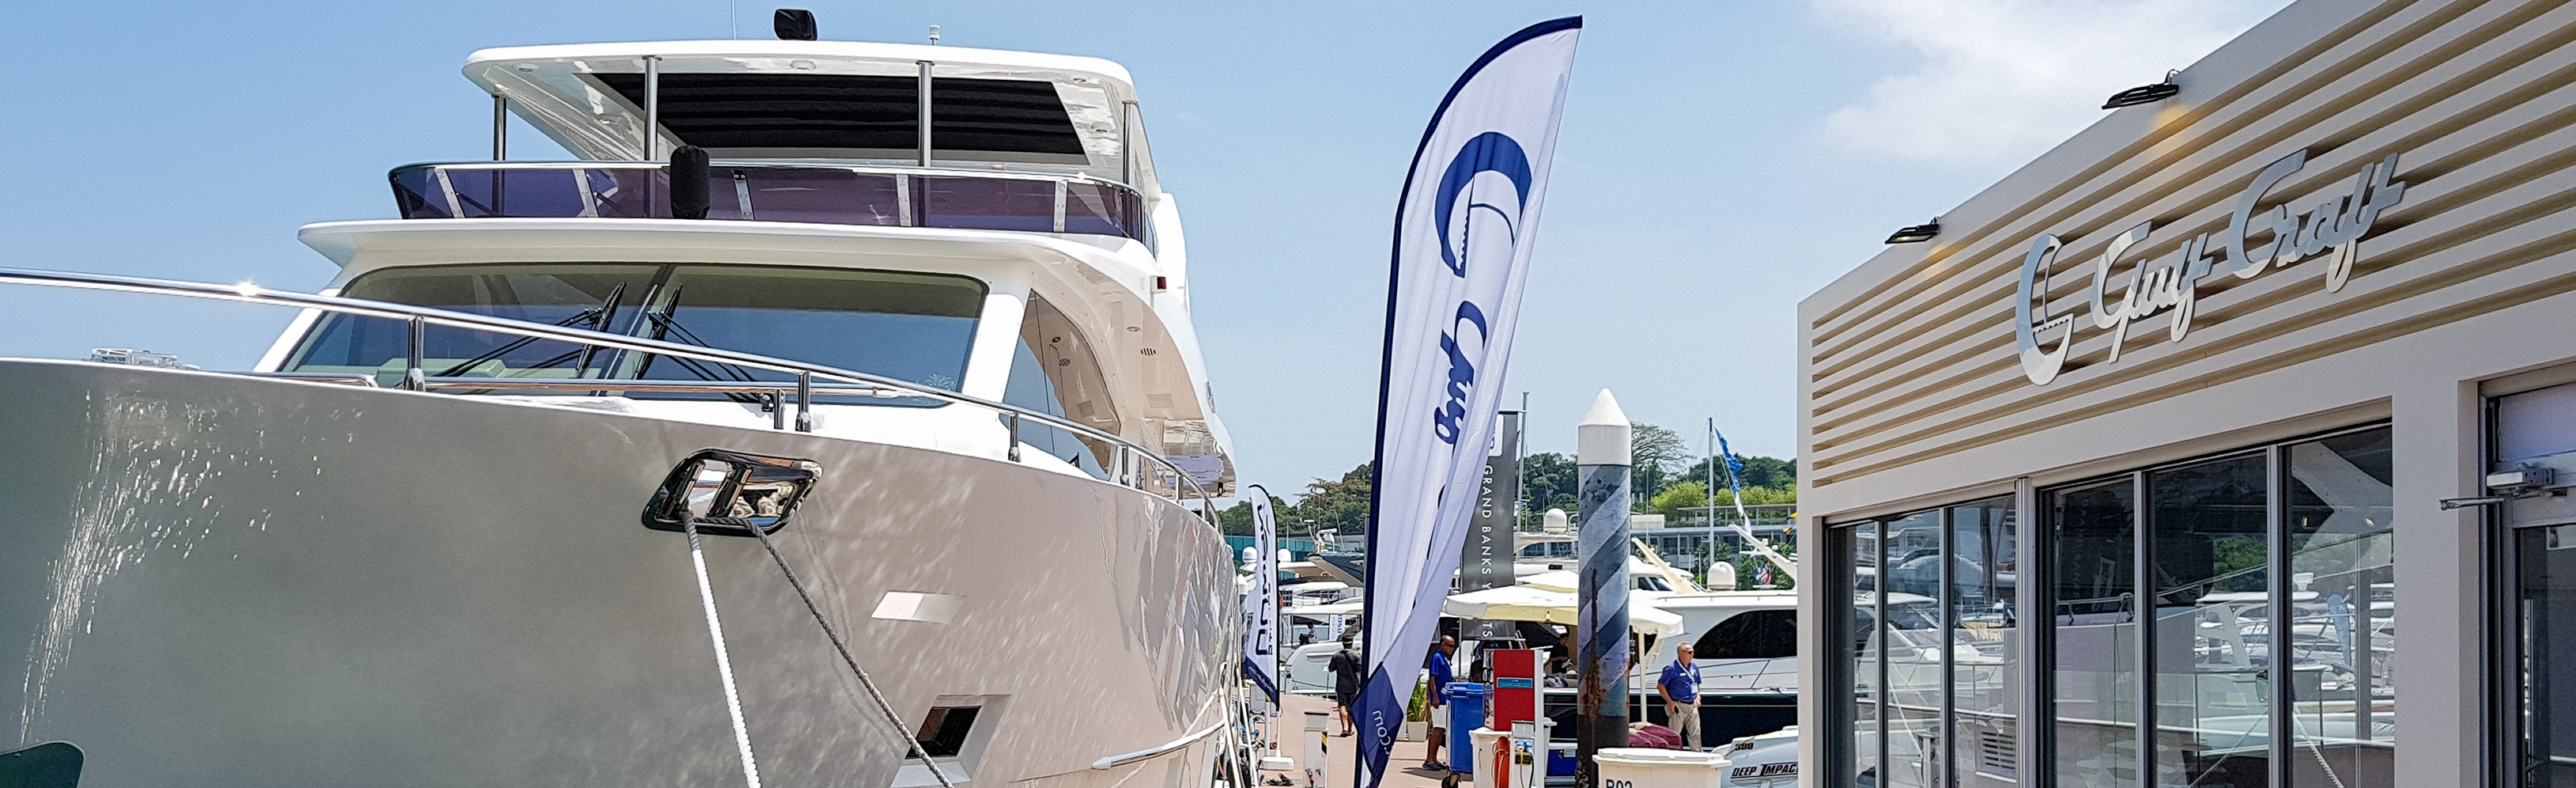 Gulf-Craft,-Singapore-Yacht-Show-2018-2